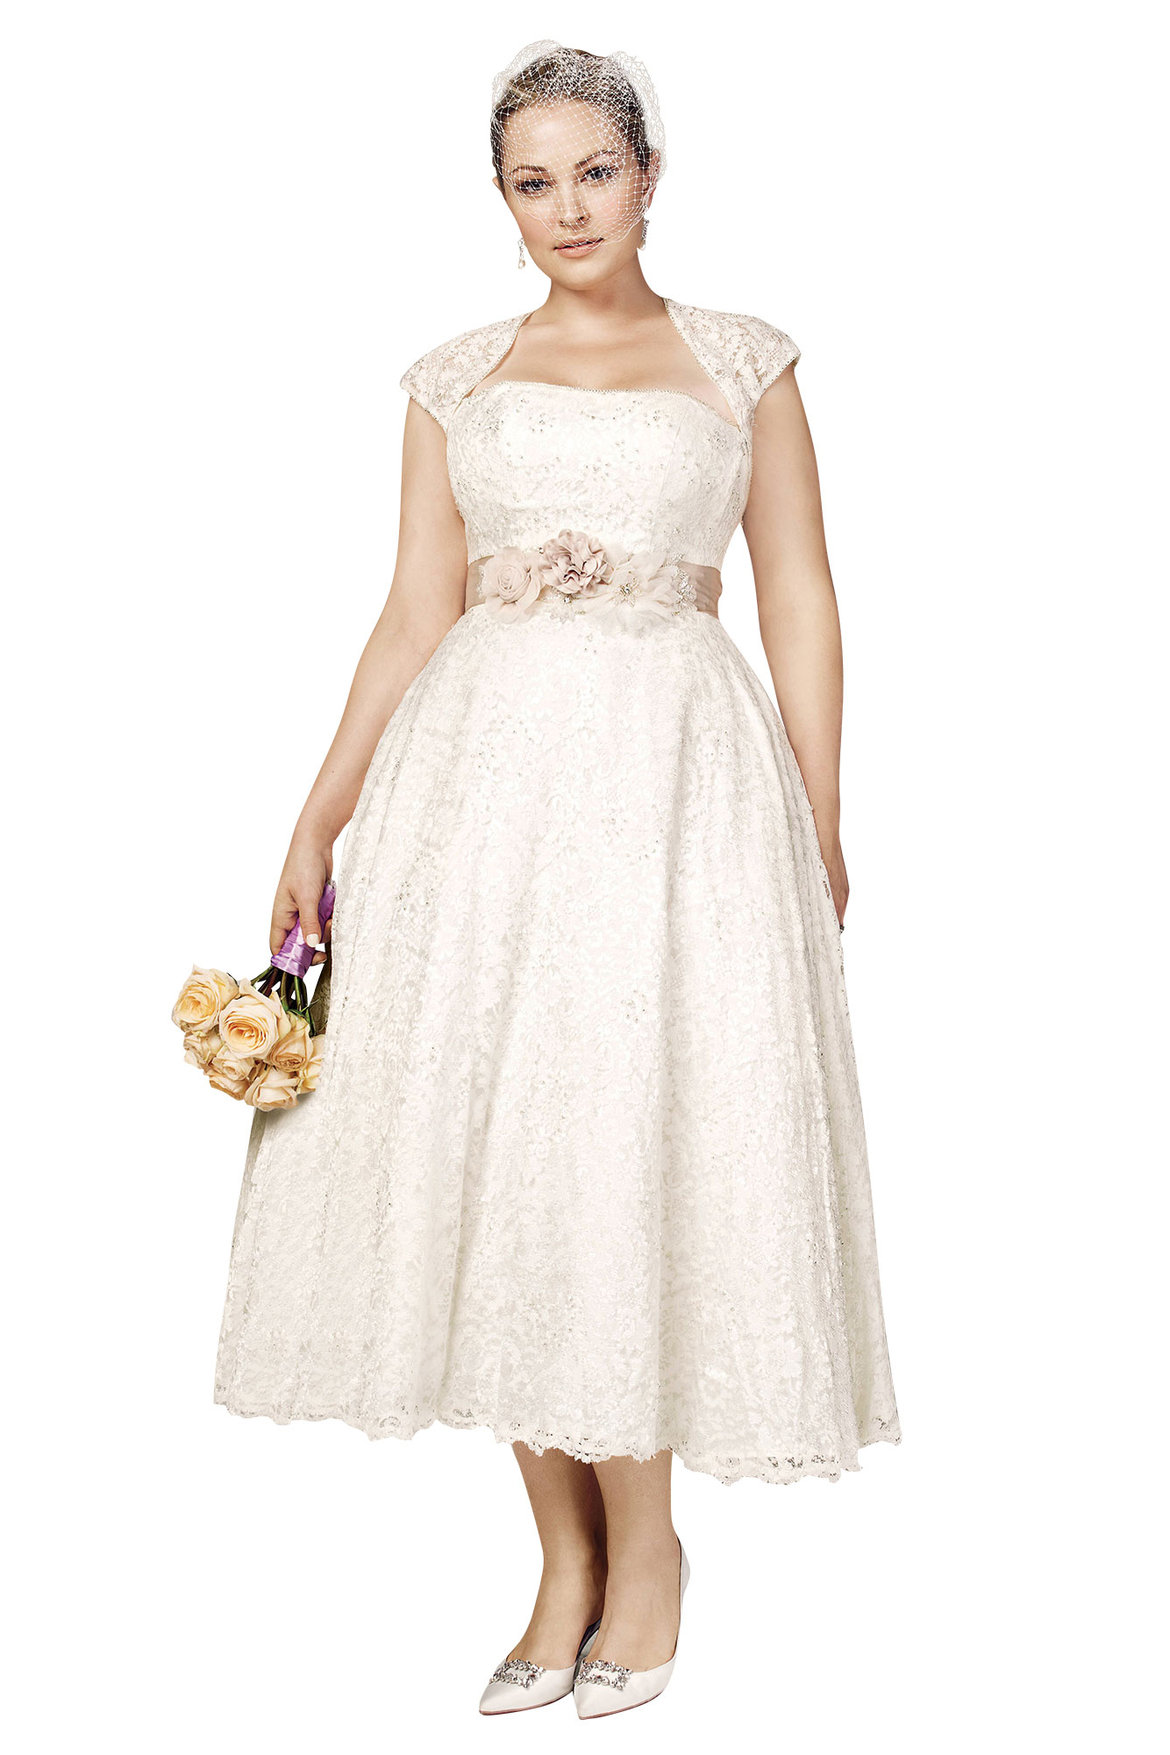 Best Wedding Dress For Your Body Type Page 5